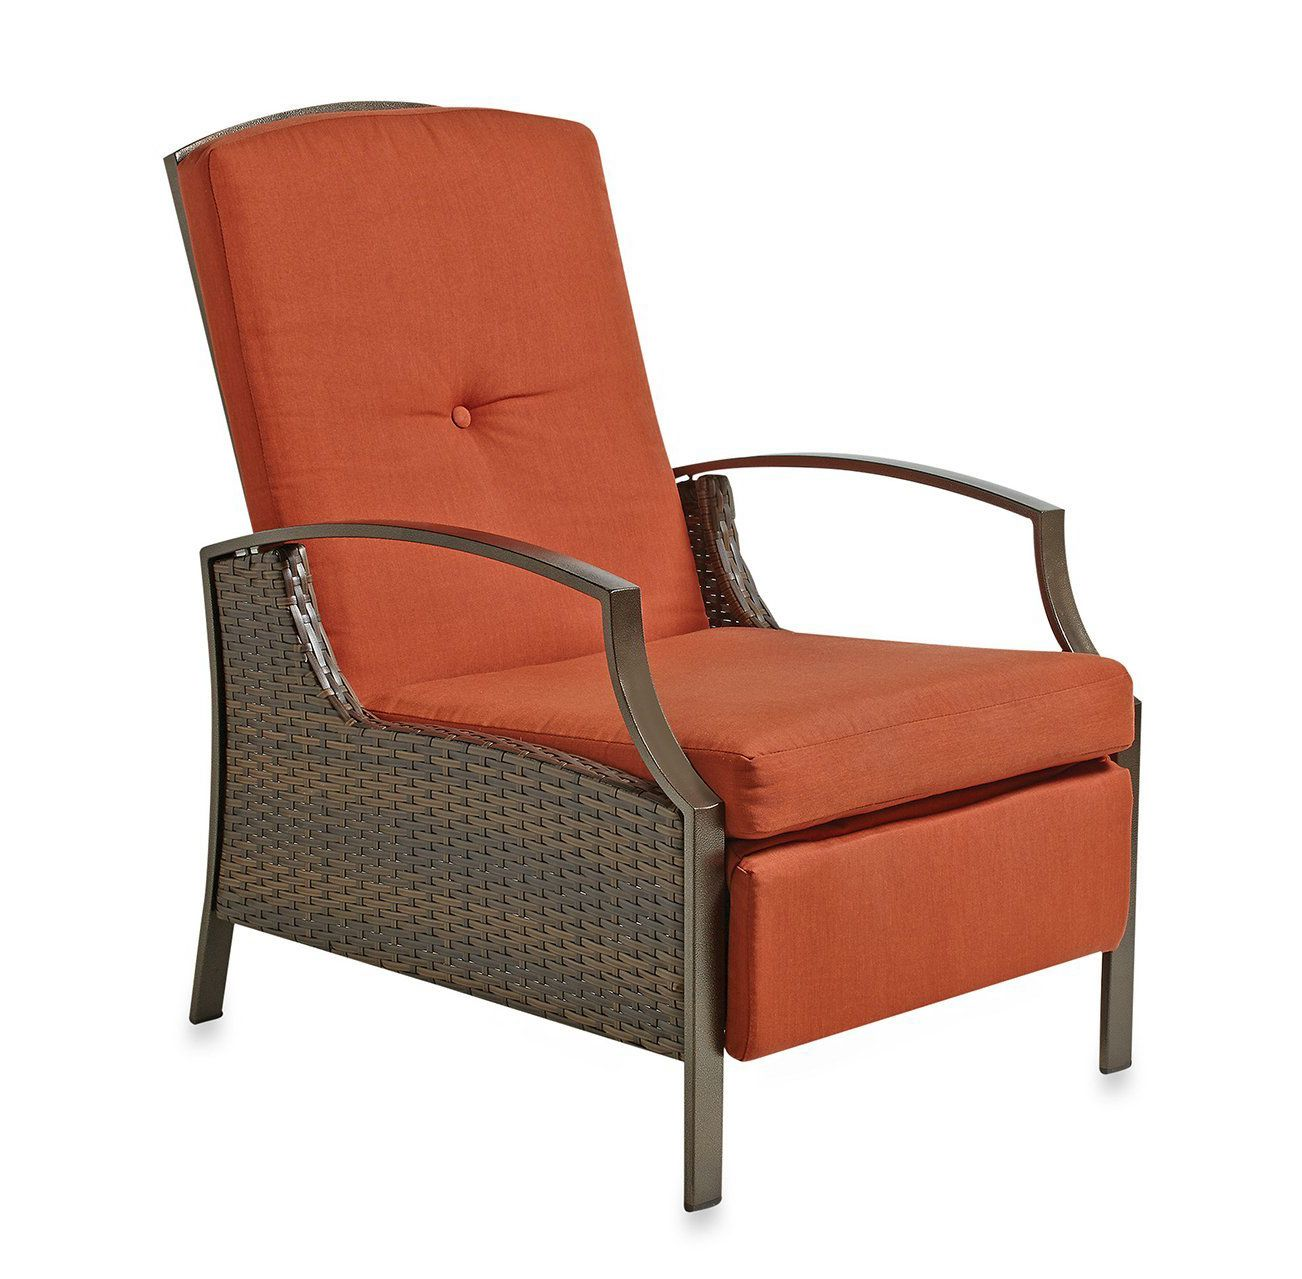 Luxury Recliners outdoor recliners for the patio or poolside